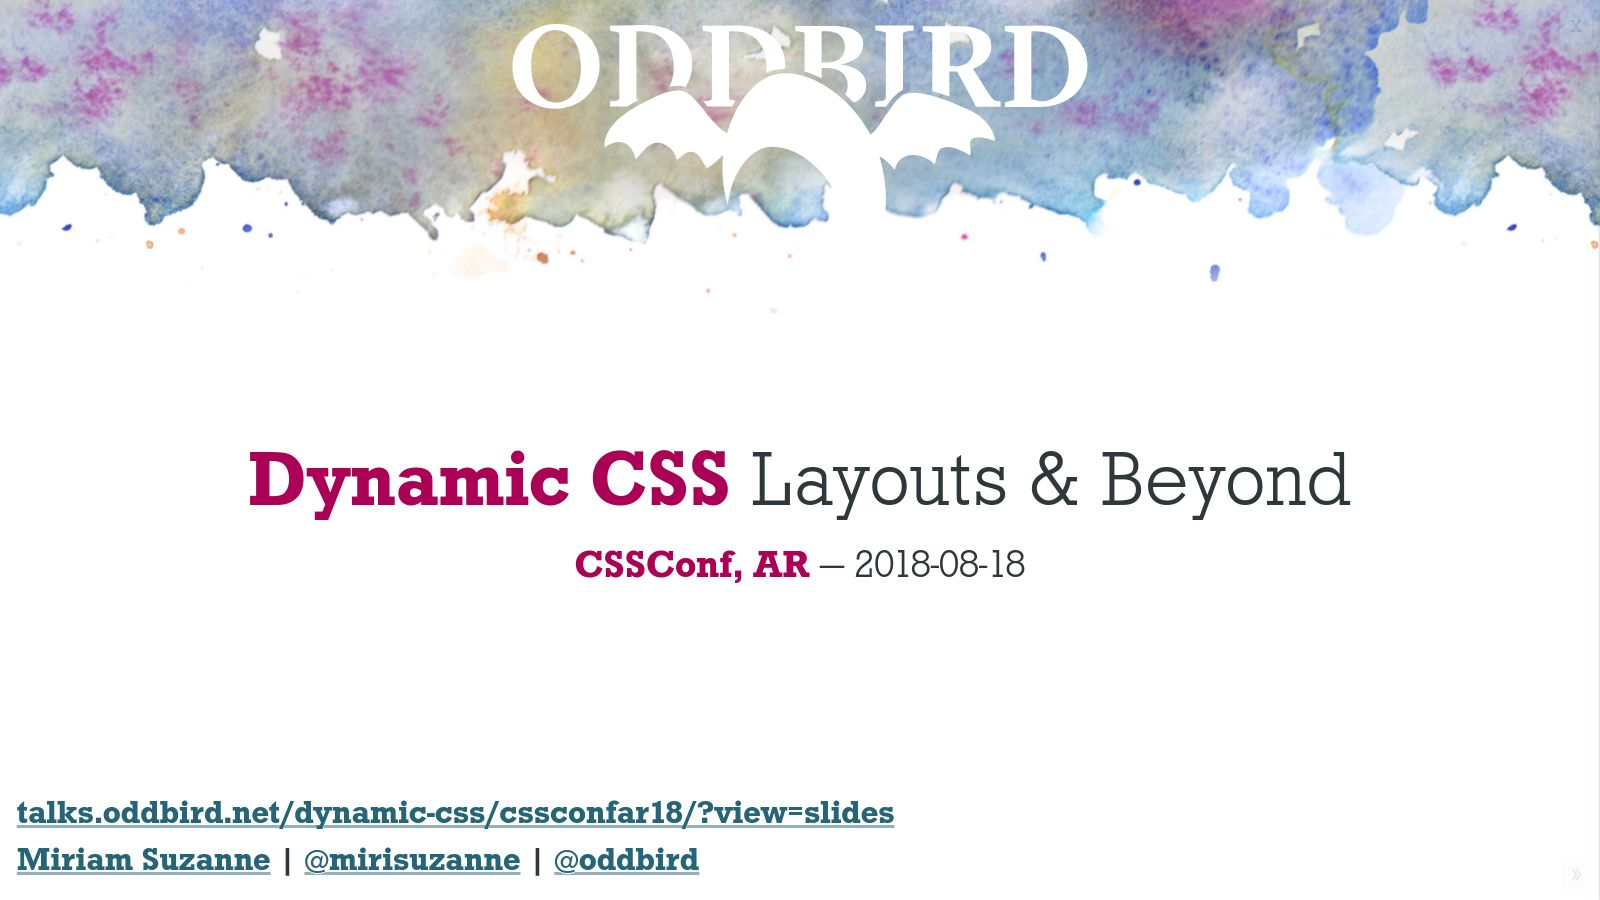 Dynamic CSS: Layouts & Beyond